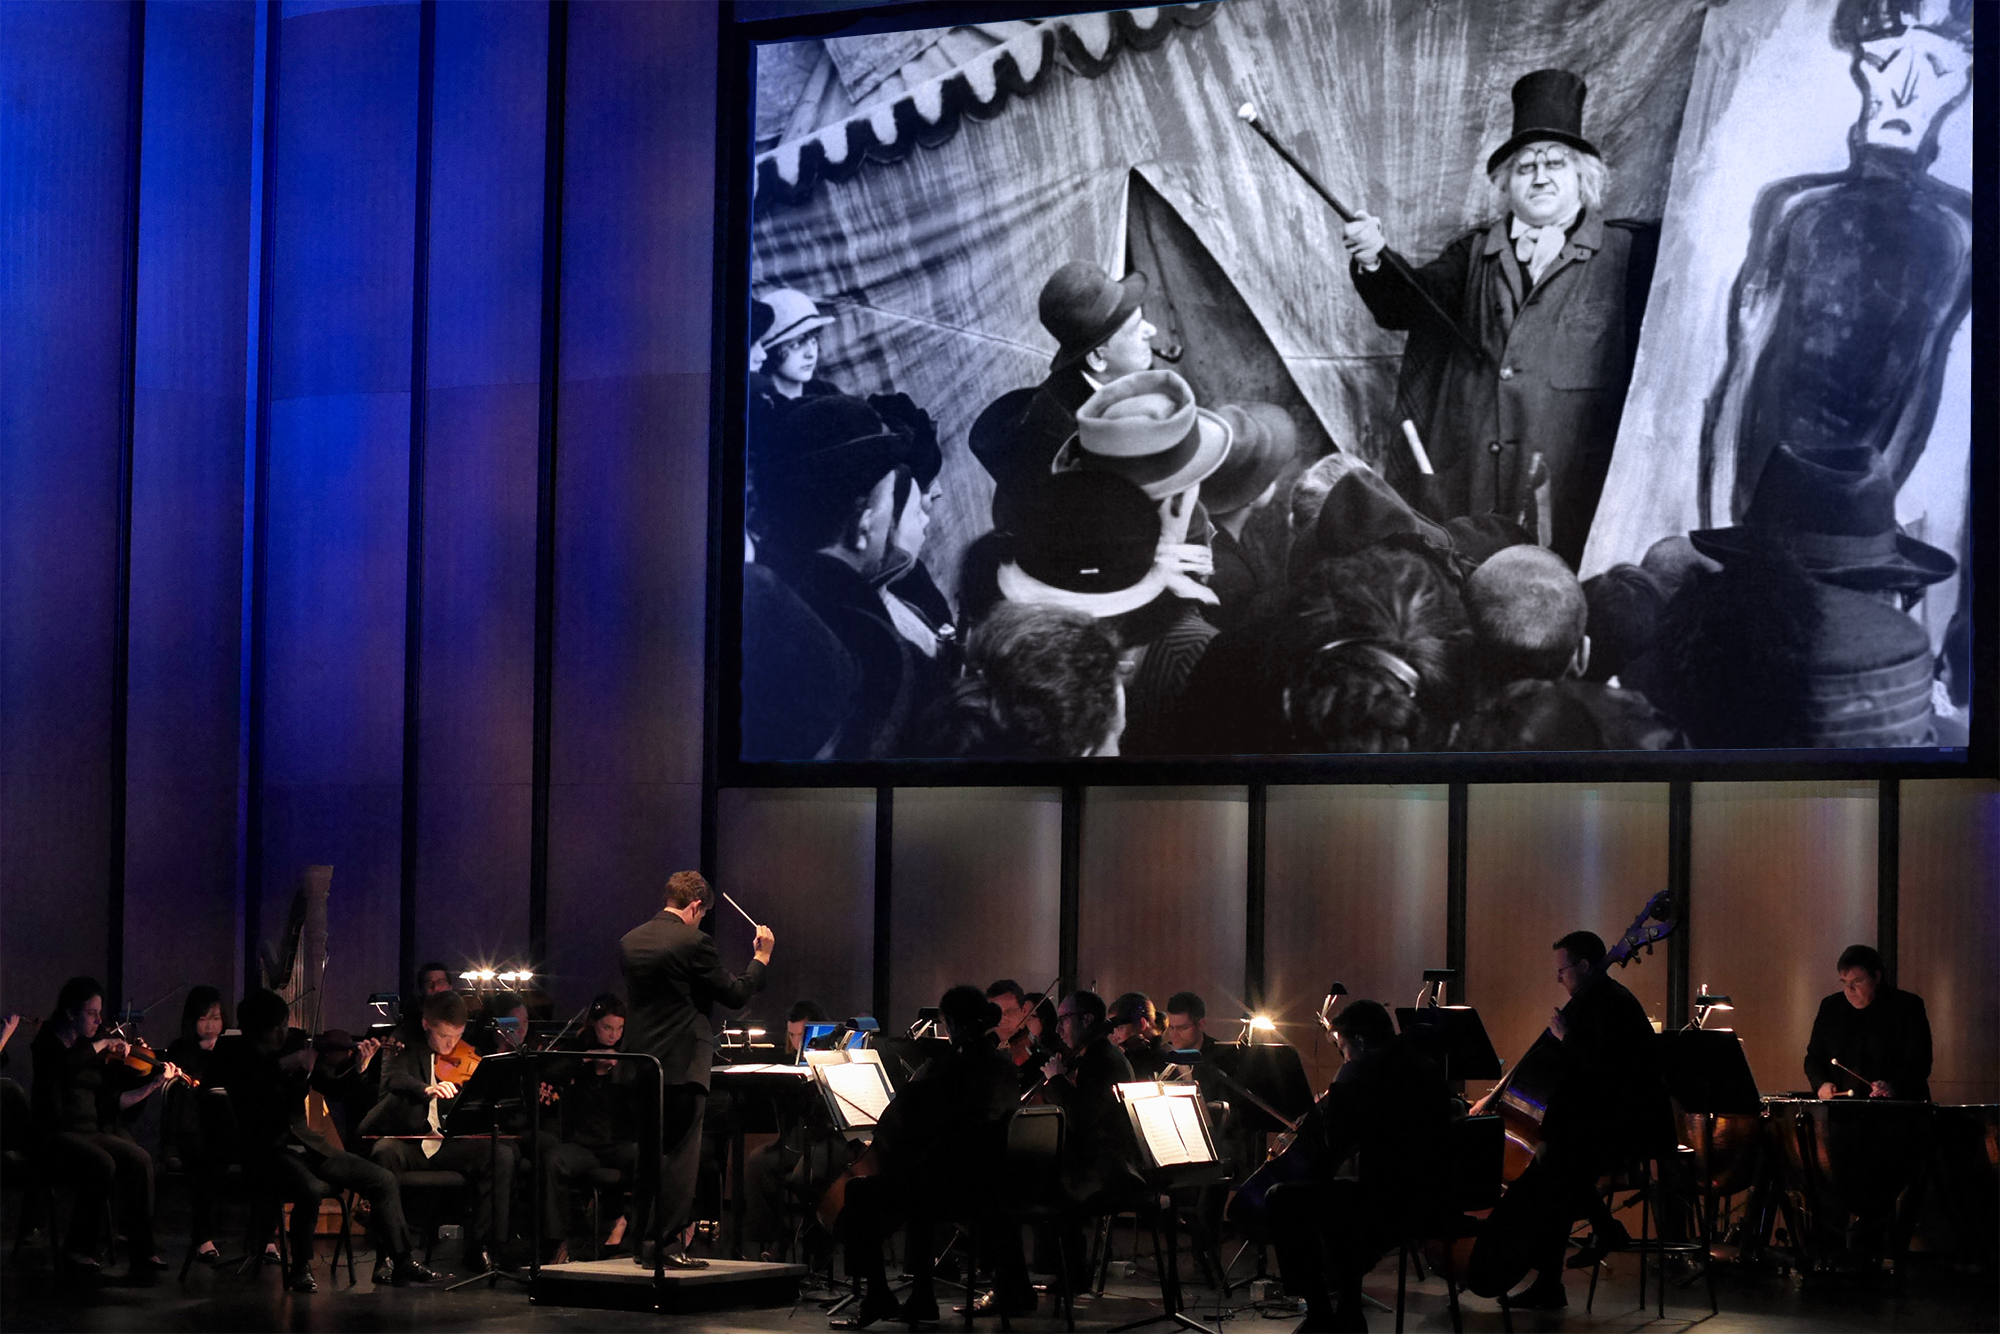 Richard Richard McKay Conducting The Cabinet of Dr. Caligari, Dallas Chamber Symphony